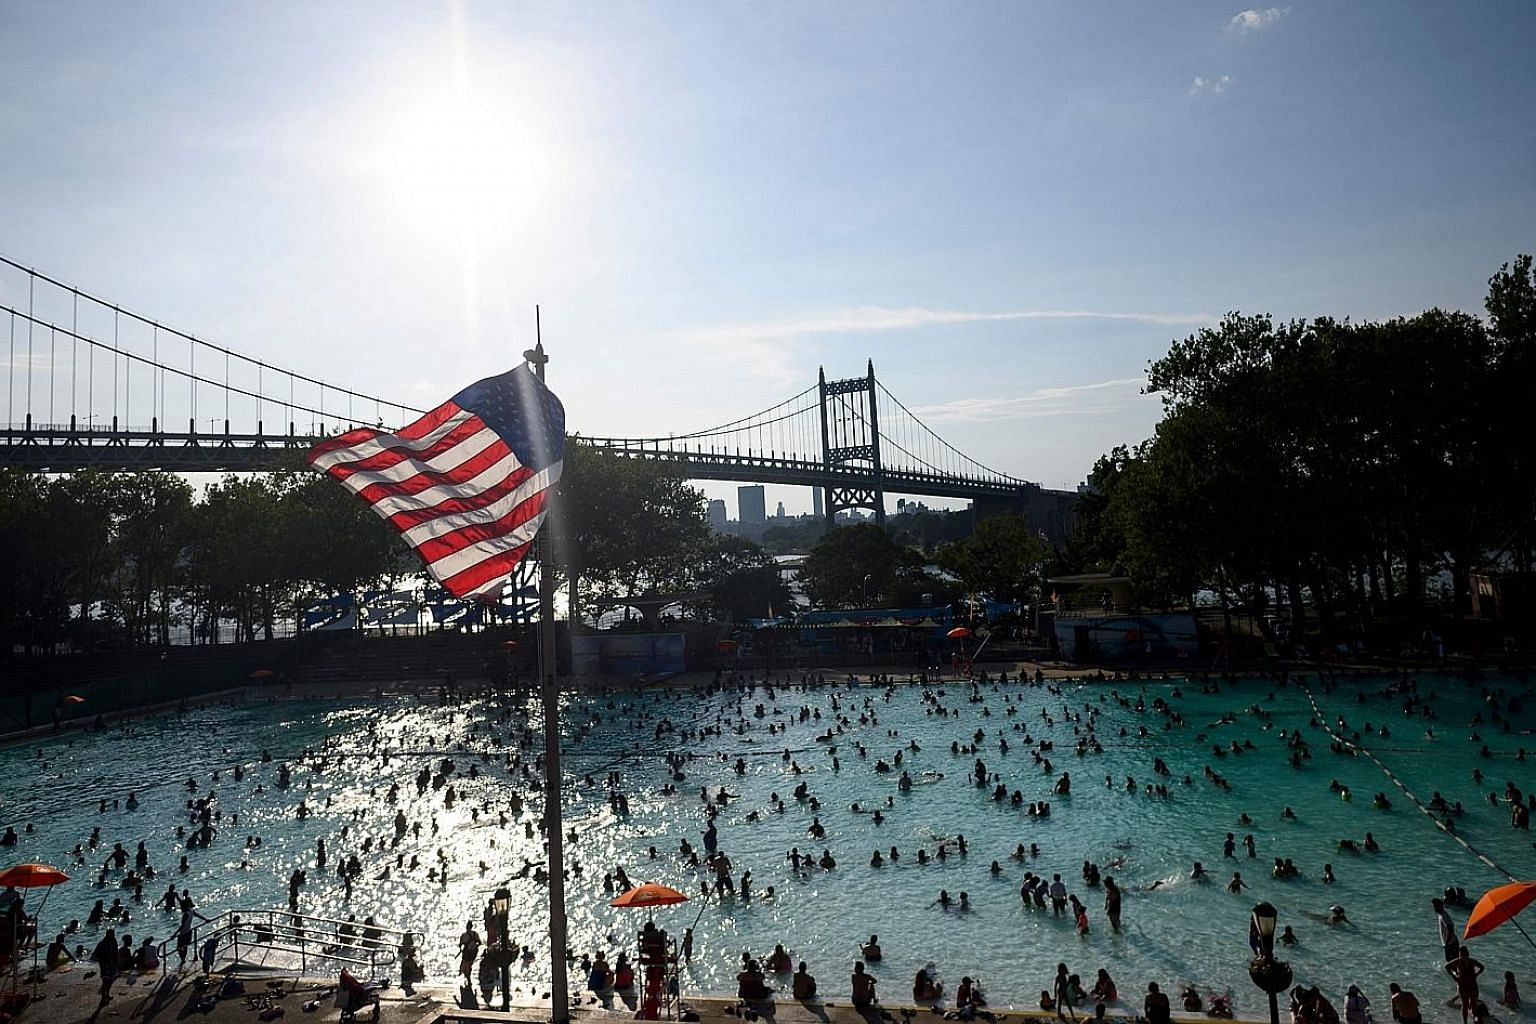 Crowds at a public swimming pool in New York City over the weekend as the US was hit by extremely hot weather, with daytime temperatures forecast to approach 38 deg C across a number of major cities.